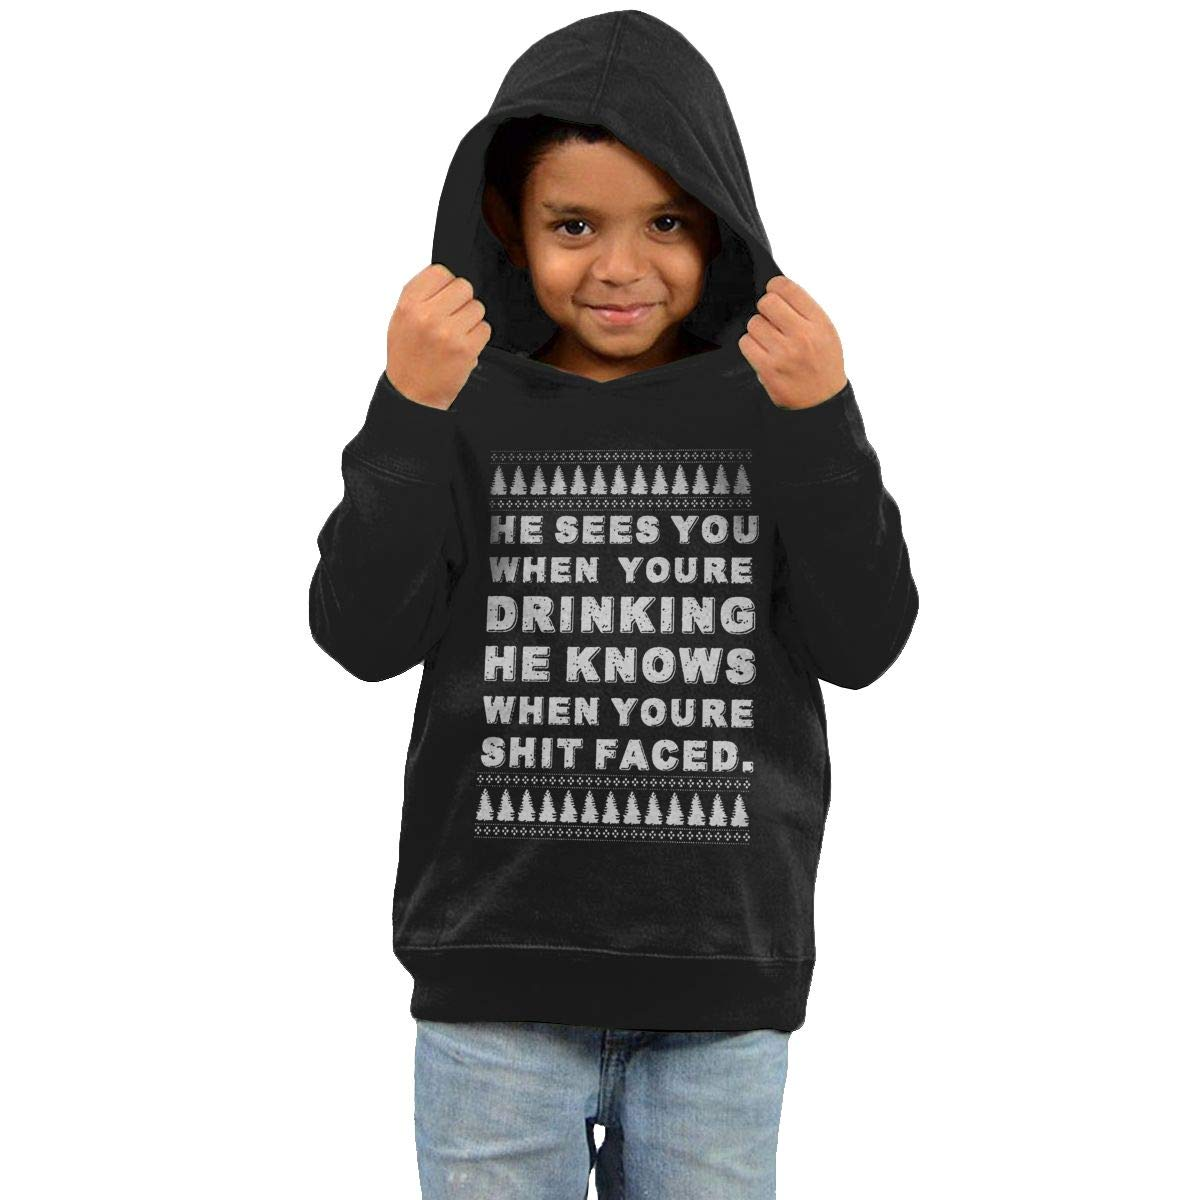 Childrens Hooded Sweater He Sees You When Youre Drinking He Knows When Youre Shit Faced Boy Sweater Black